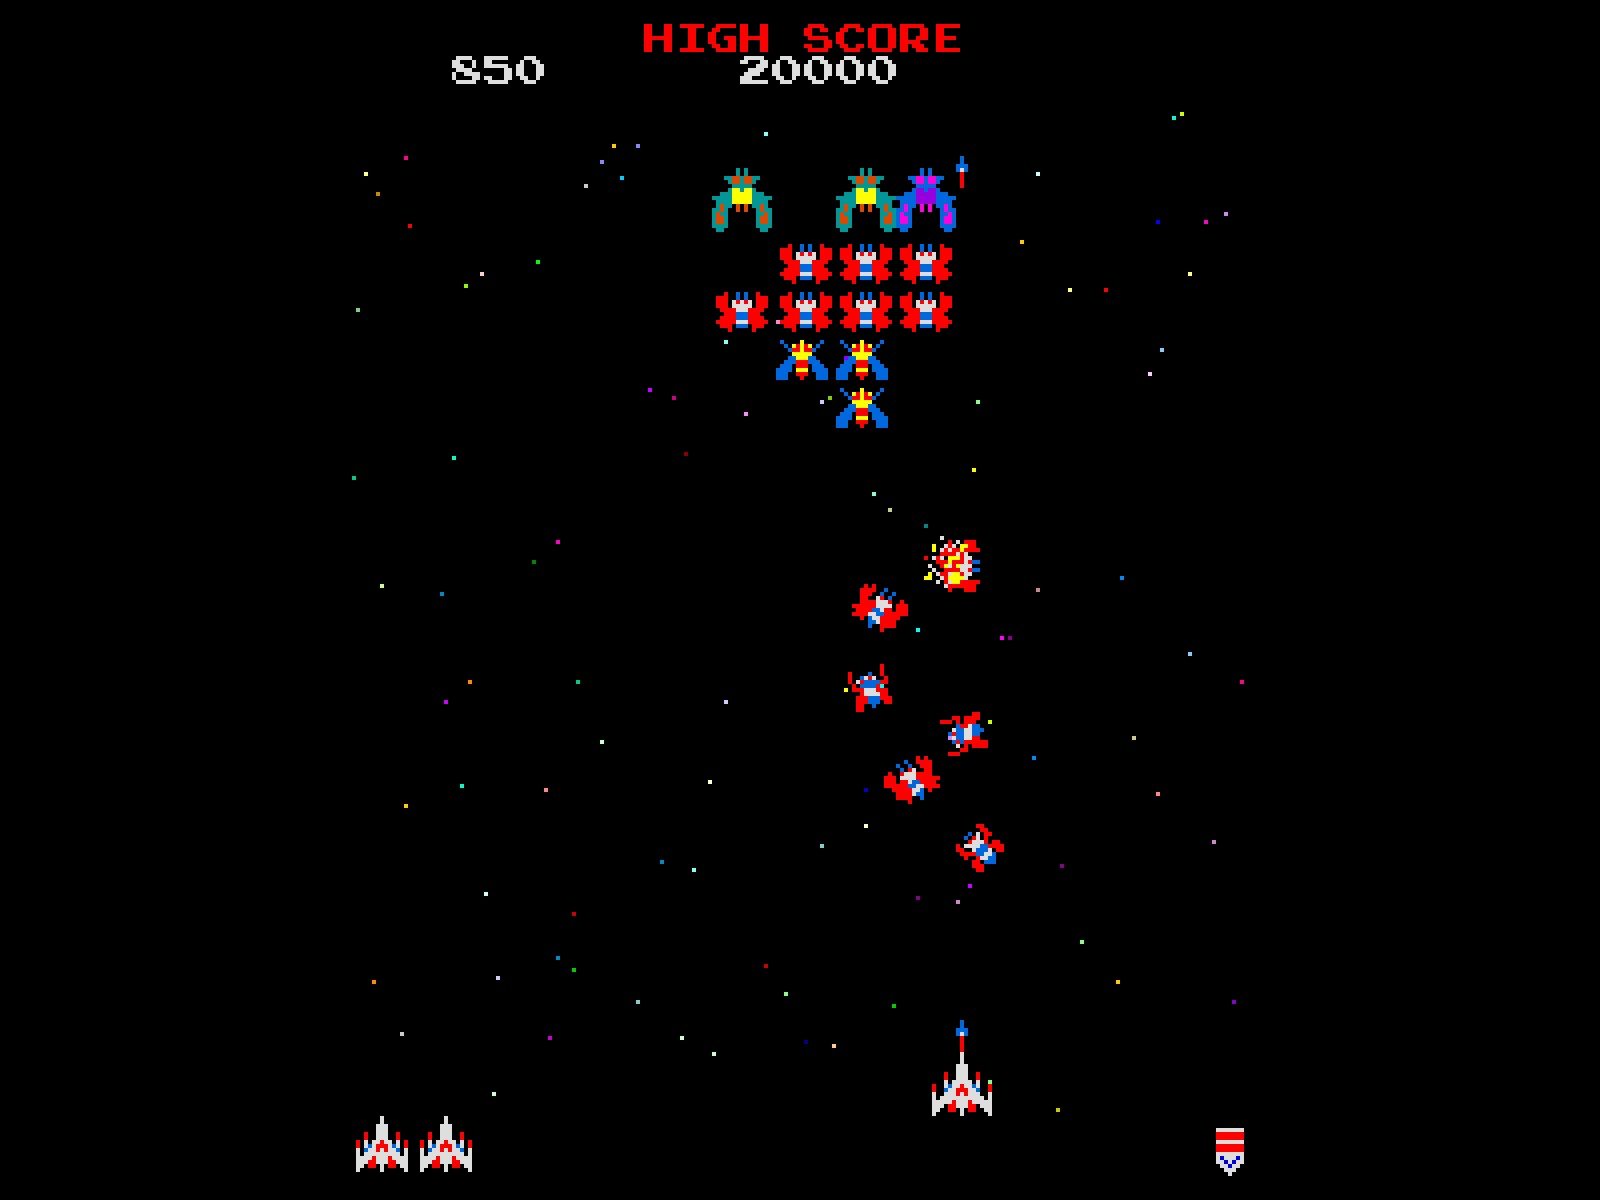 Galaga Wallpaper and Background Image 1600x1200 ID445907 1600x1200